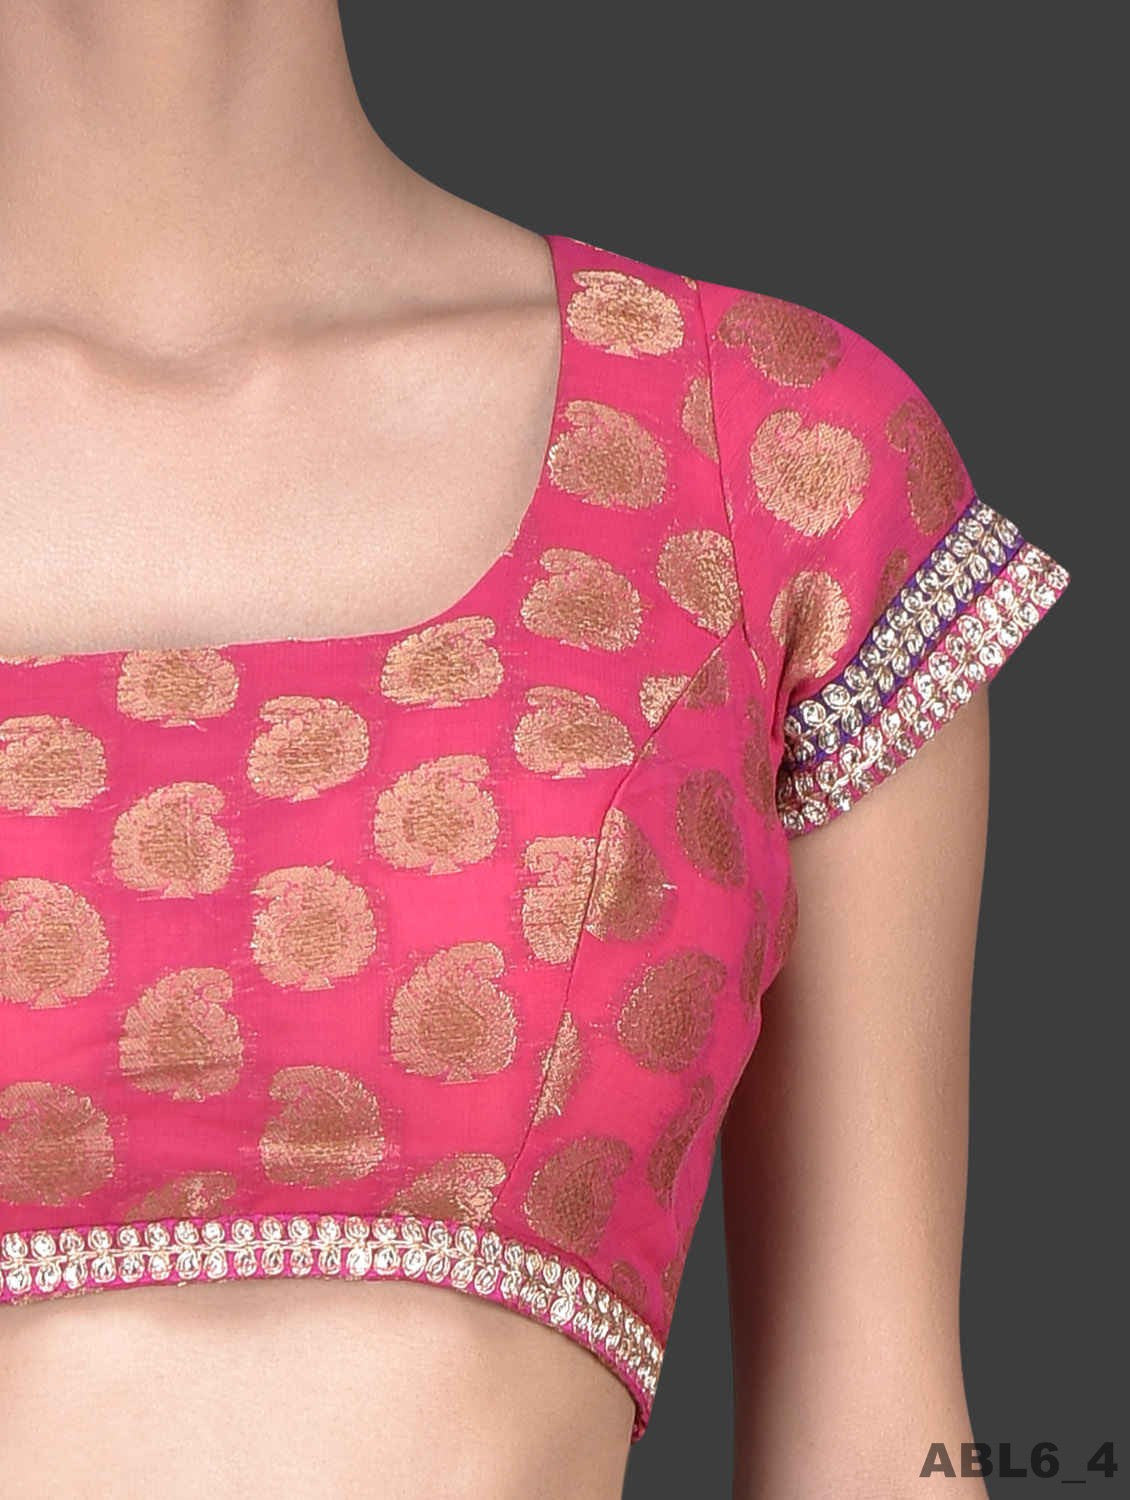 JKK Mart Hand Stitched Wedding Hot Pink Blouse Bridal Saree Matching ABL6 - JKK Mart